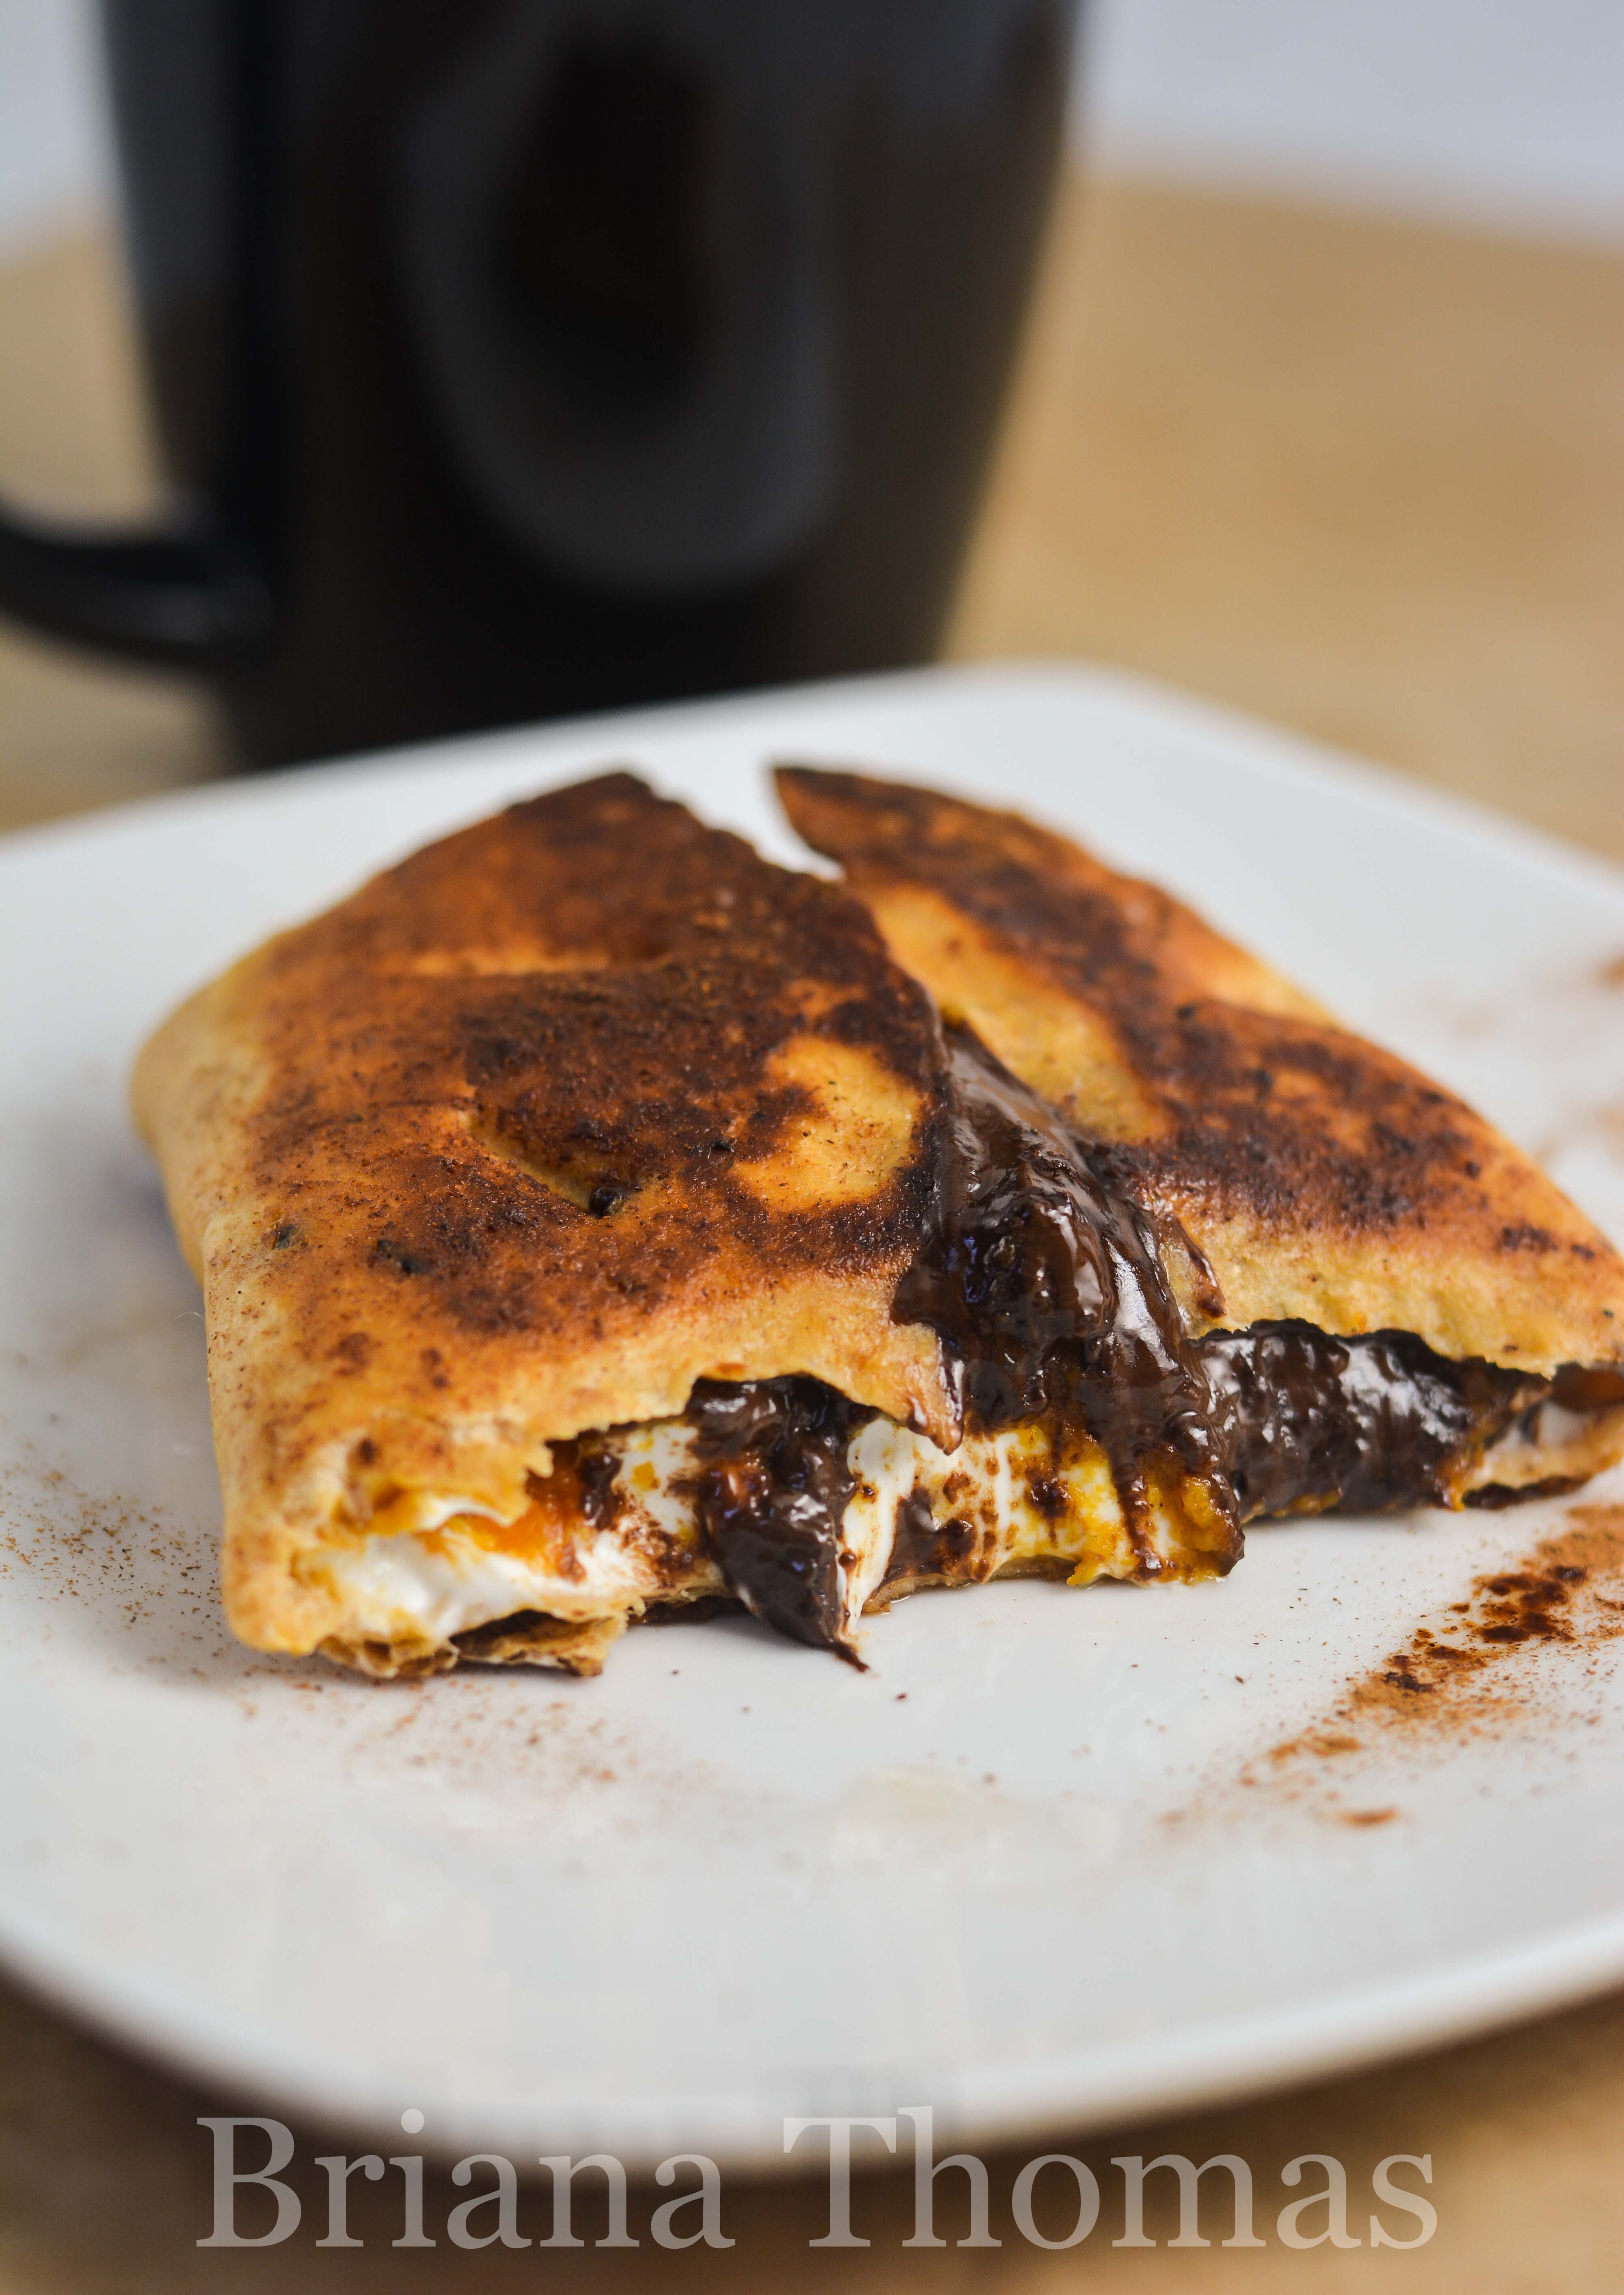 This Creamy Pumpkin Chocolate Fried Taco is melt-in-your-mouth delightful from beginning to end! THM:S, low carb, sugar free